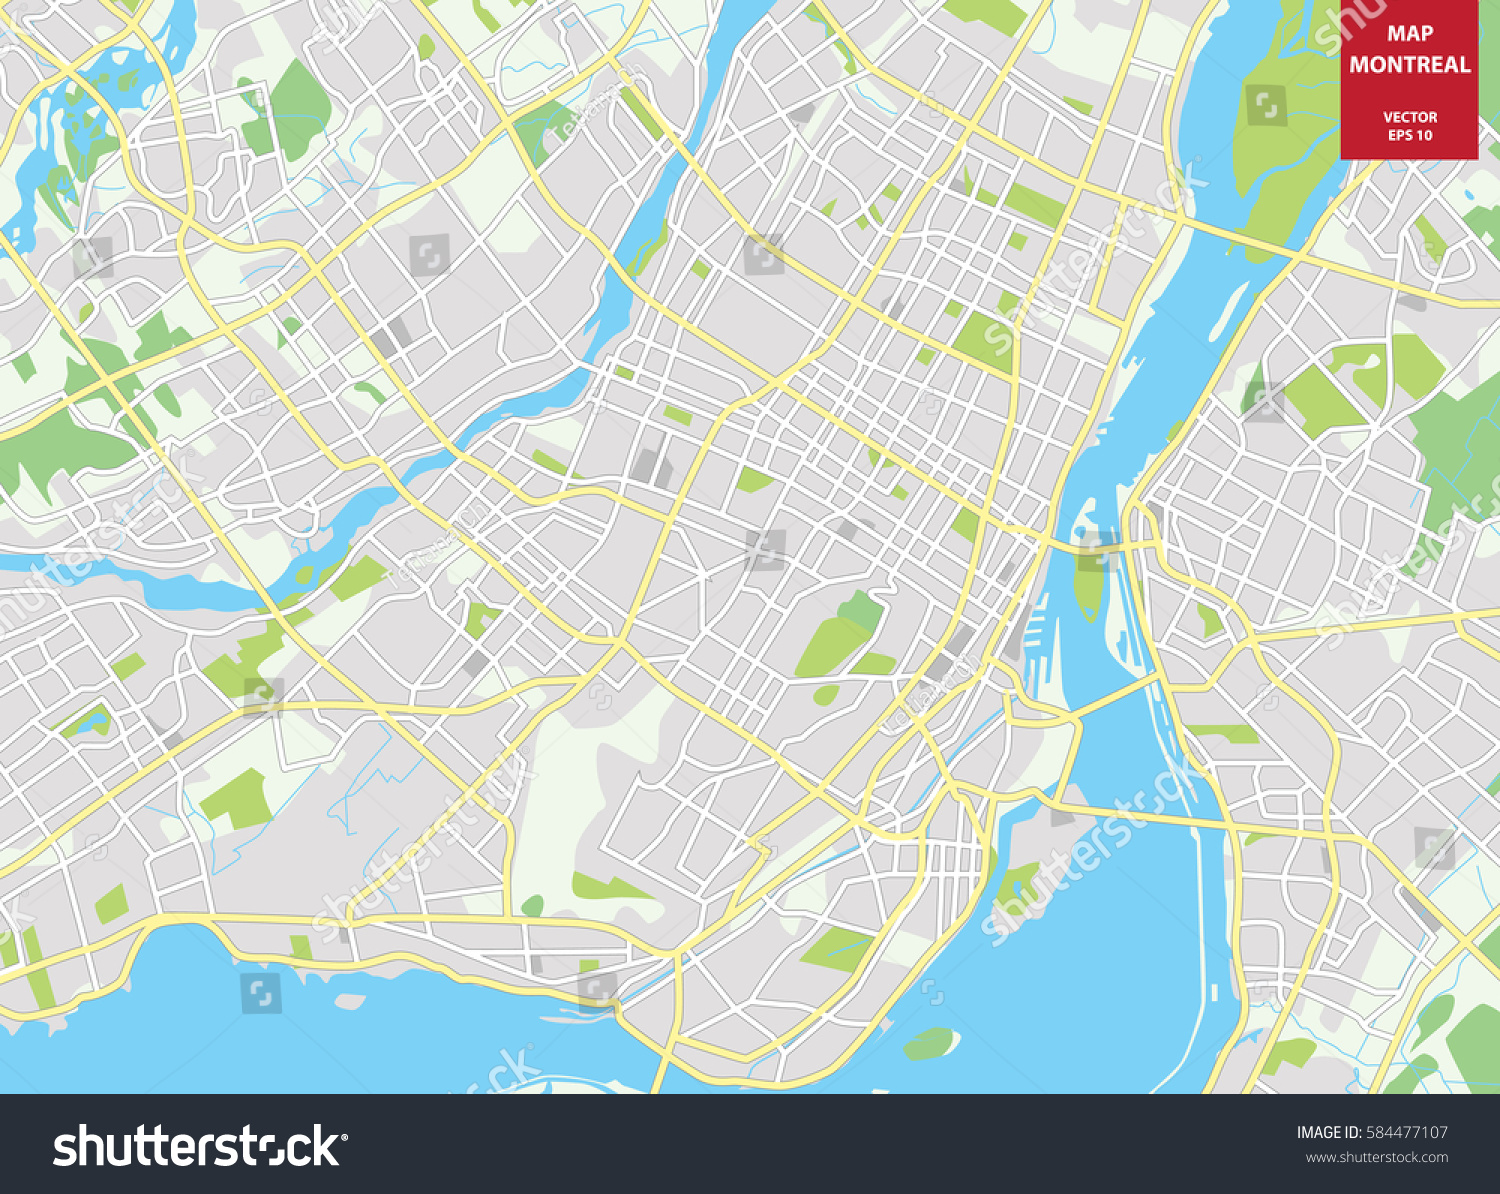 vector color map of montreal canada city plan of montreal vectorillustration. vector color map montreal canada city stock vector